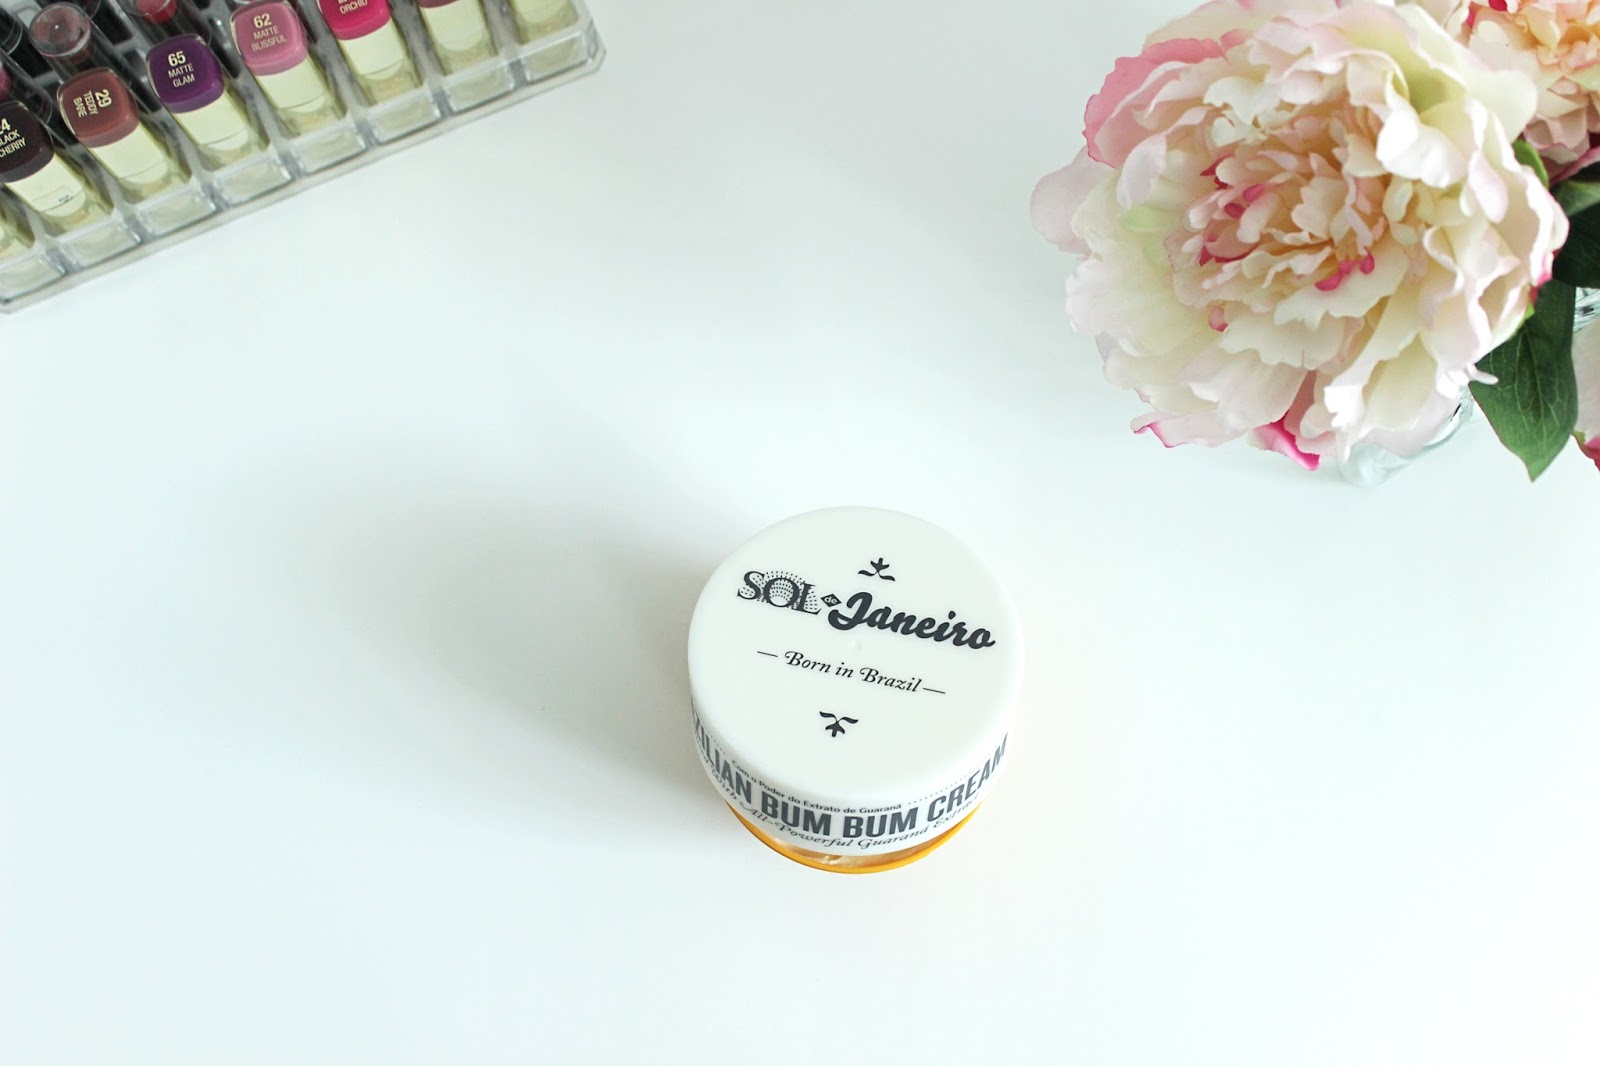 beauty, skin care, cream, tightening cream, beauty products, dry skin